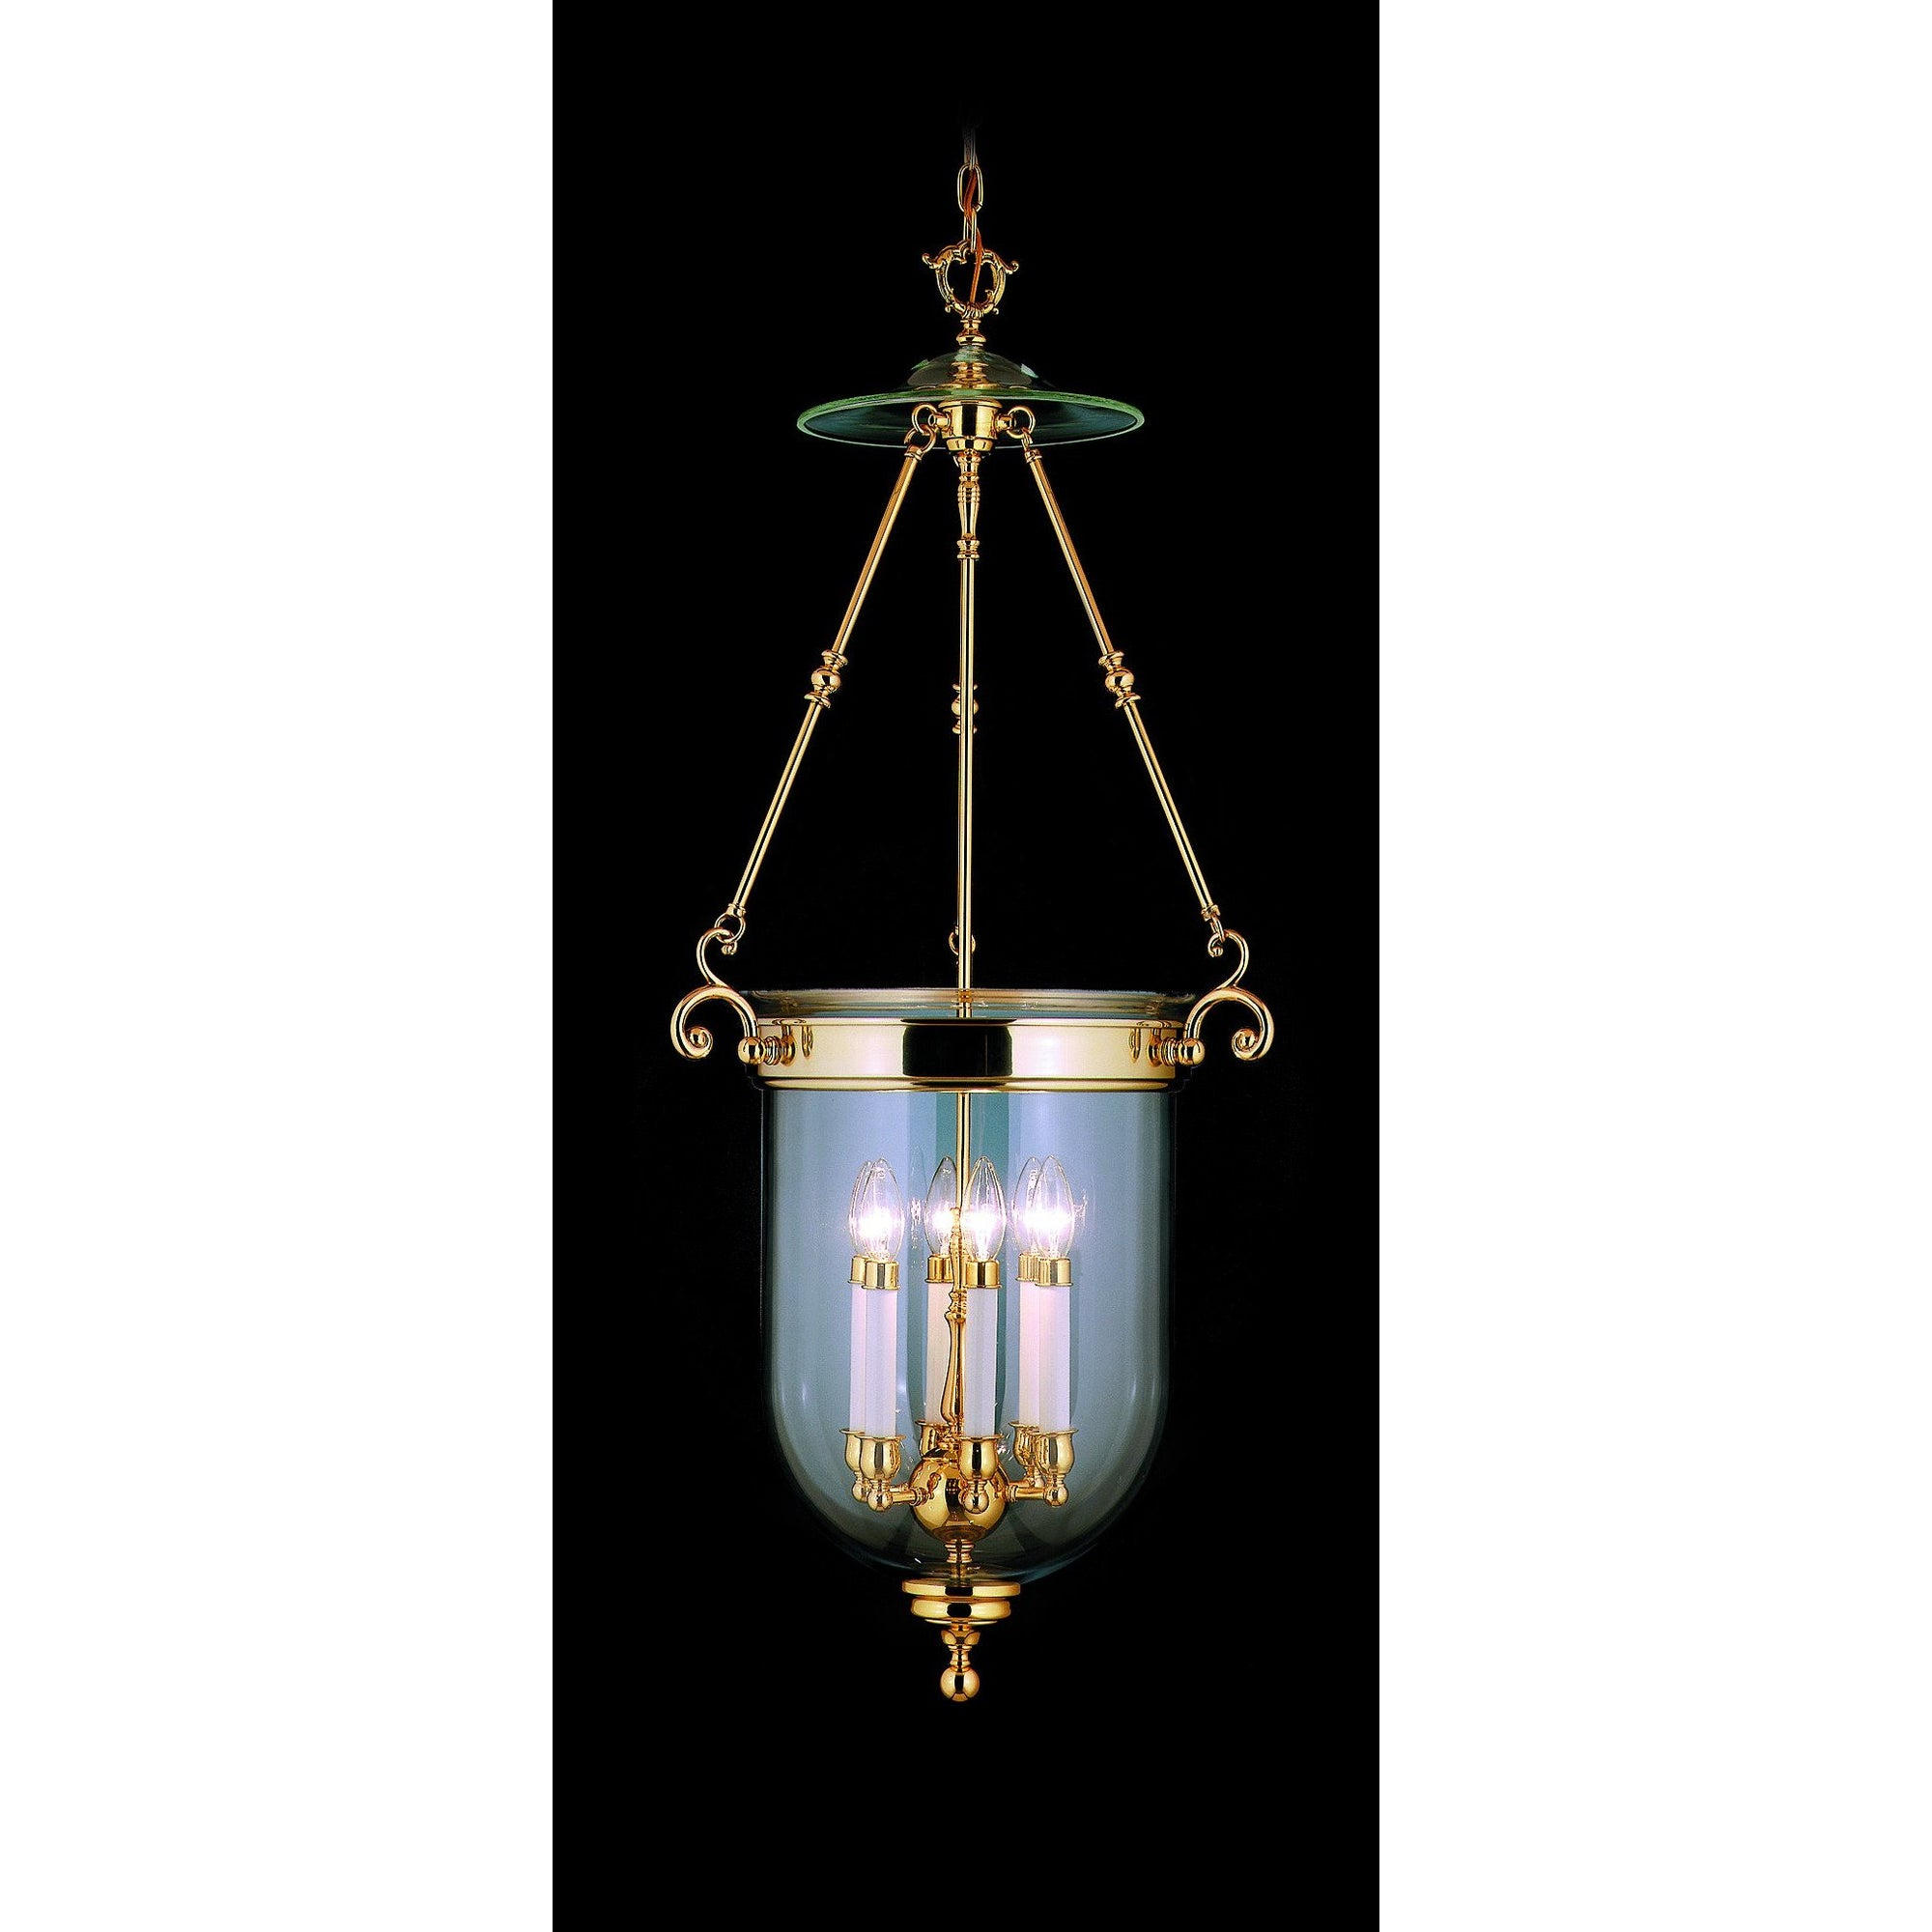 Framburg Foyer Chandeliers Polished Brass 6-Light Polished Brass Jamestown Foyer Chandelier by Framburg 7406